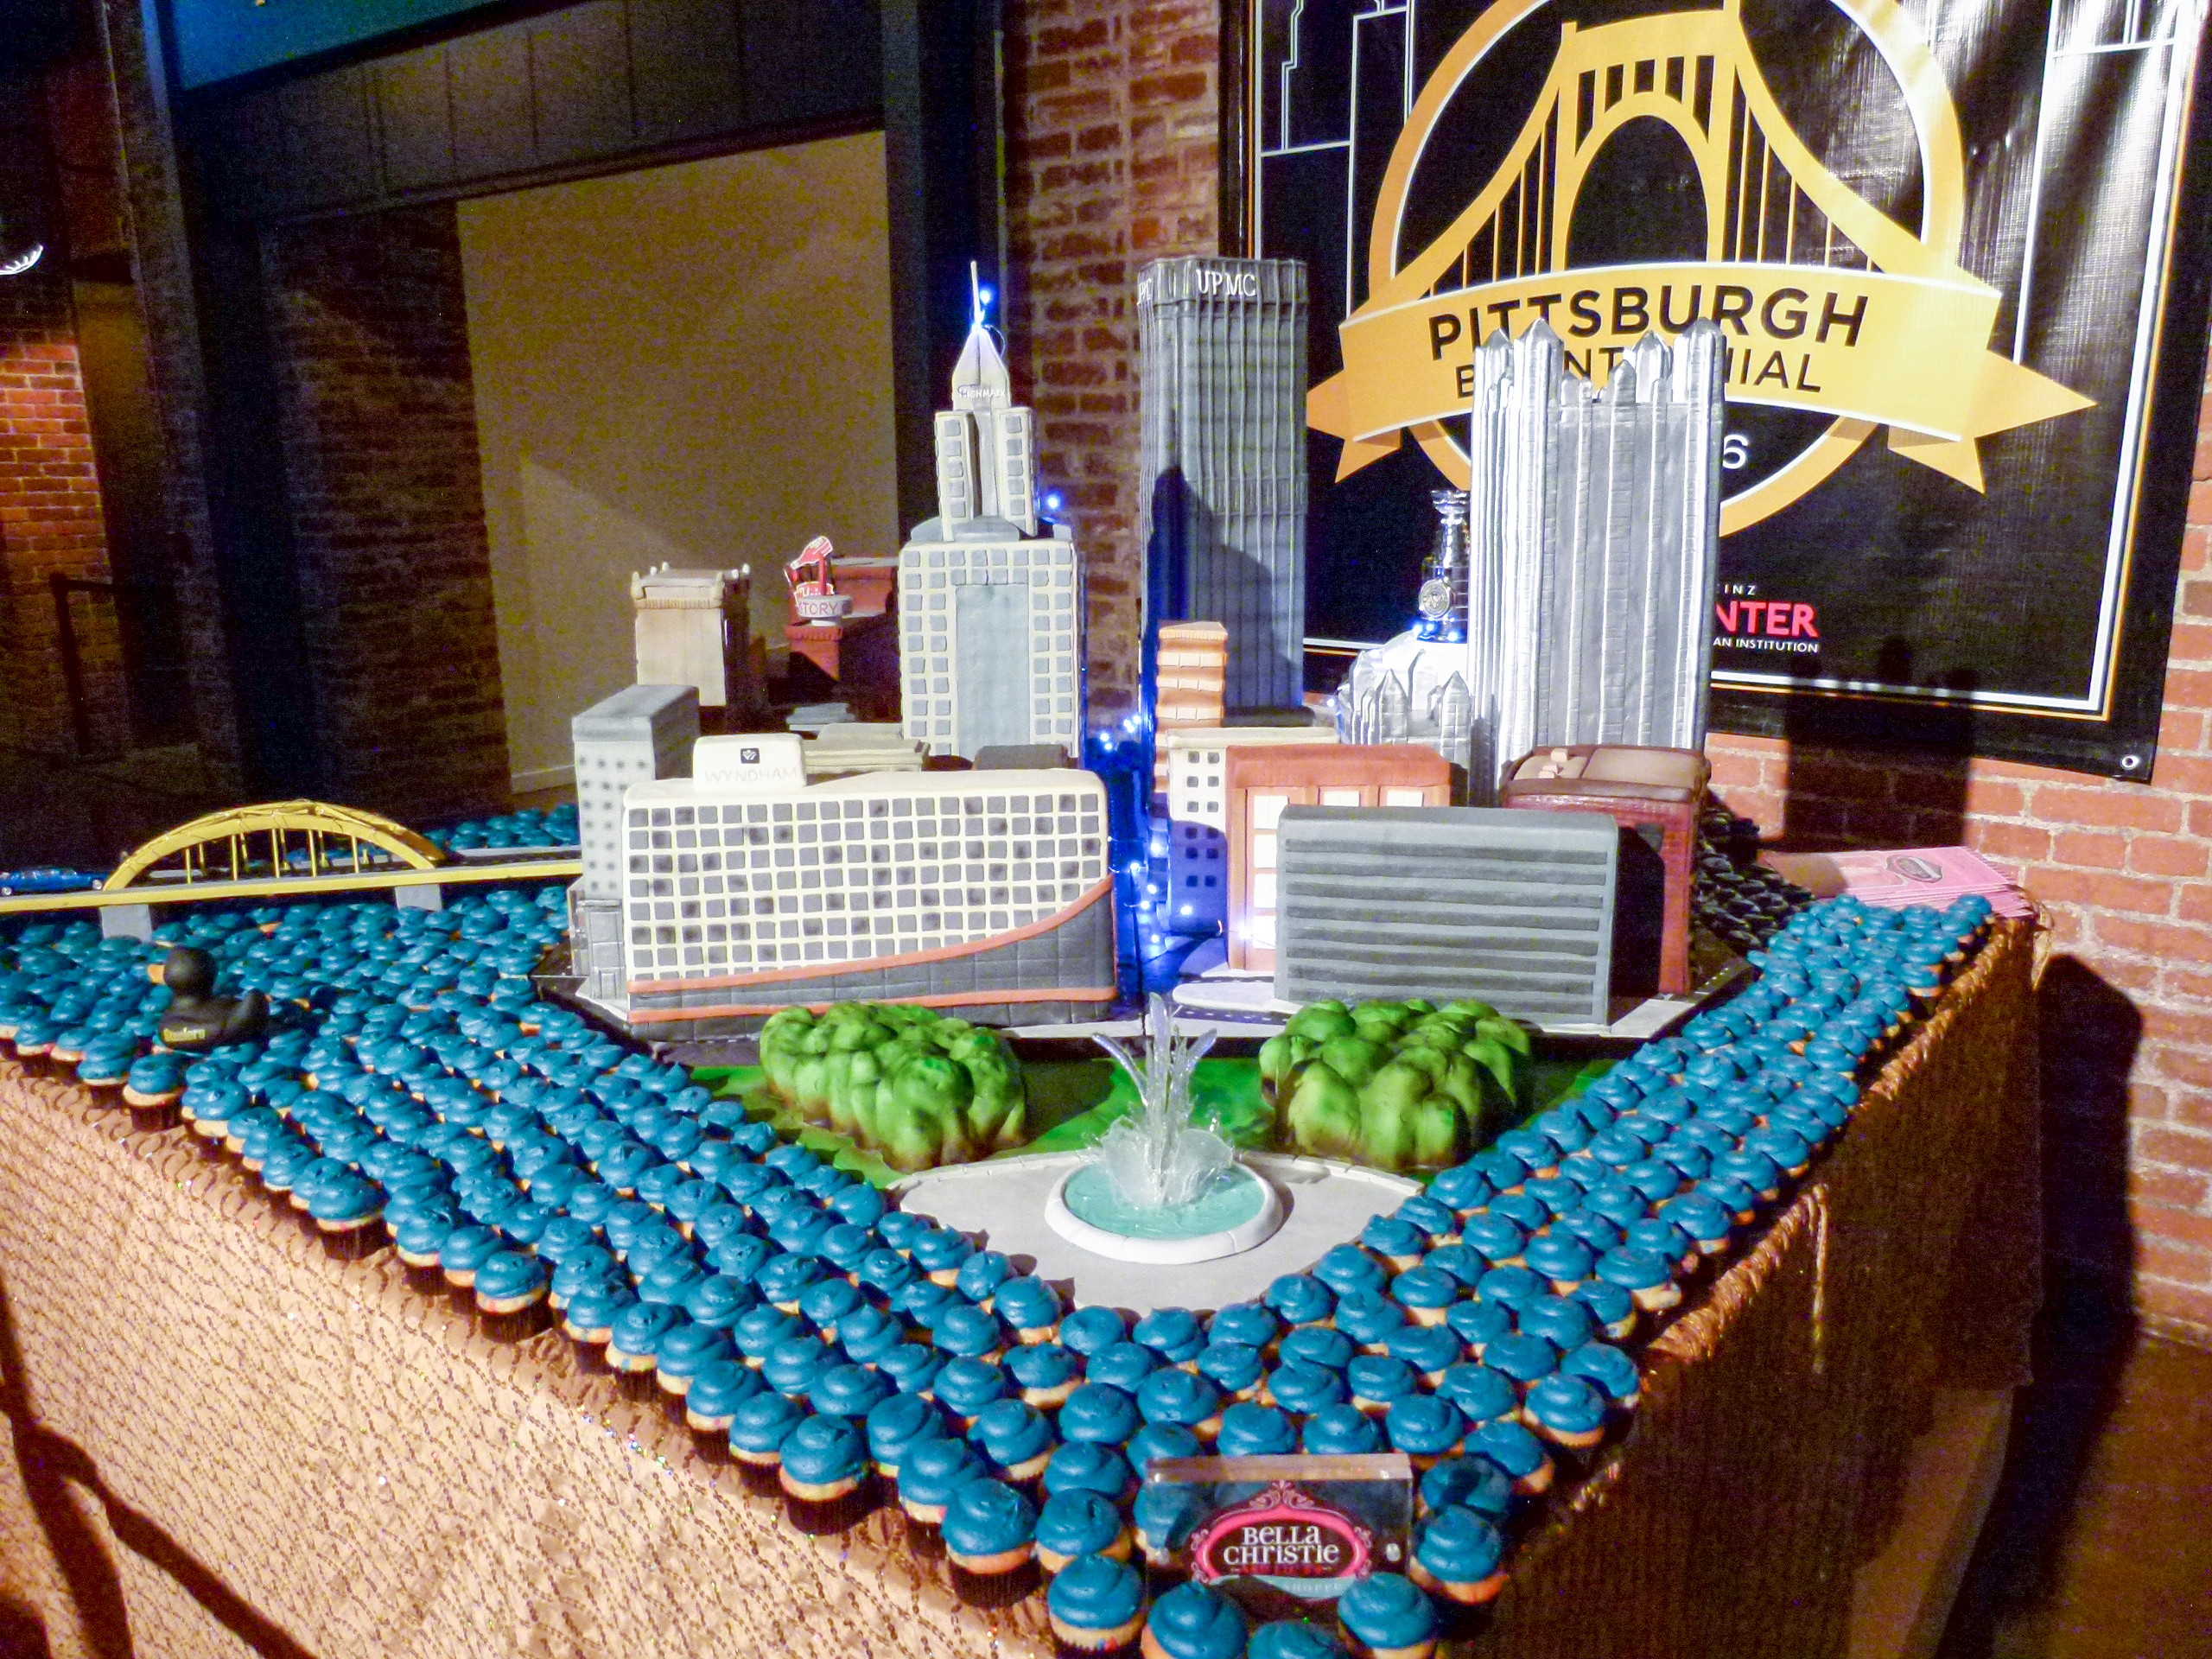 A Bicentennial Birthday Bash for Pittsburgh.  A beautiful cake of Pittsburgh was one of the many fun ingredients for a once every 200 year party at the Senator John Heinz History Center.